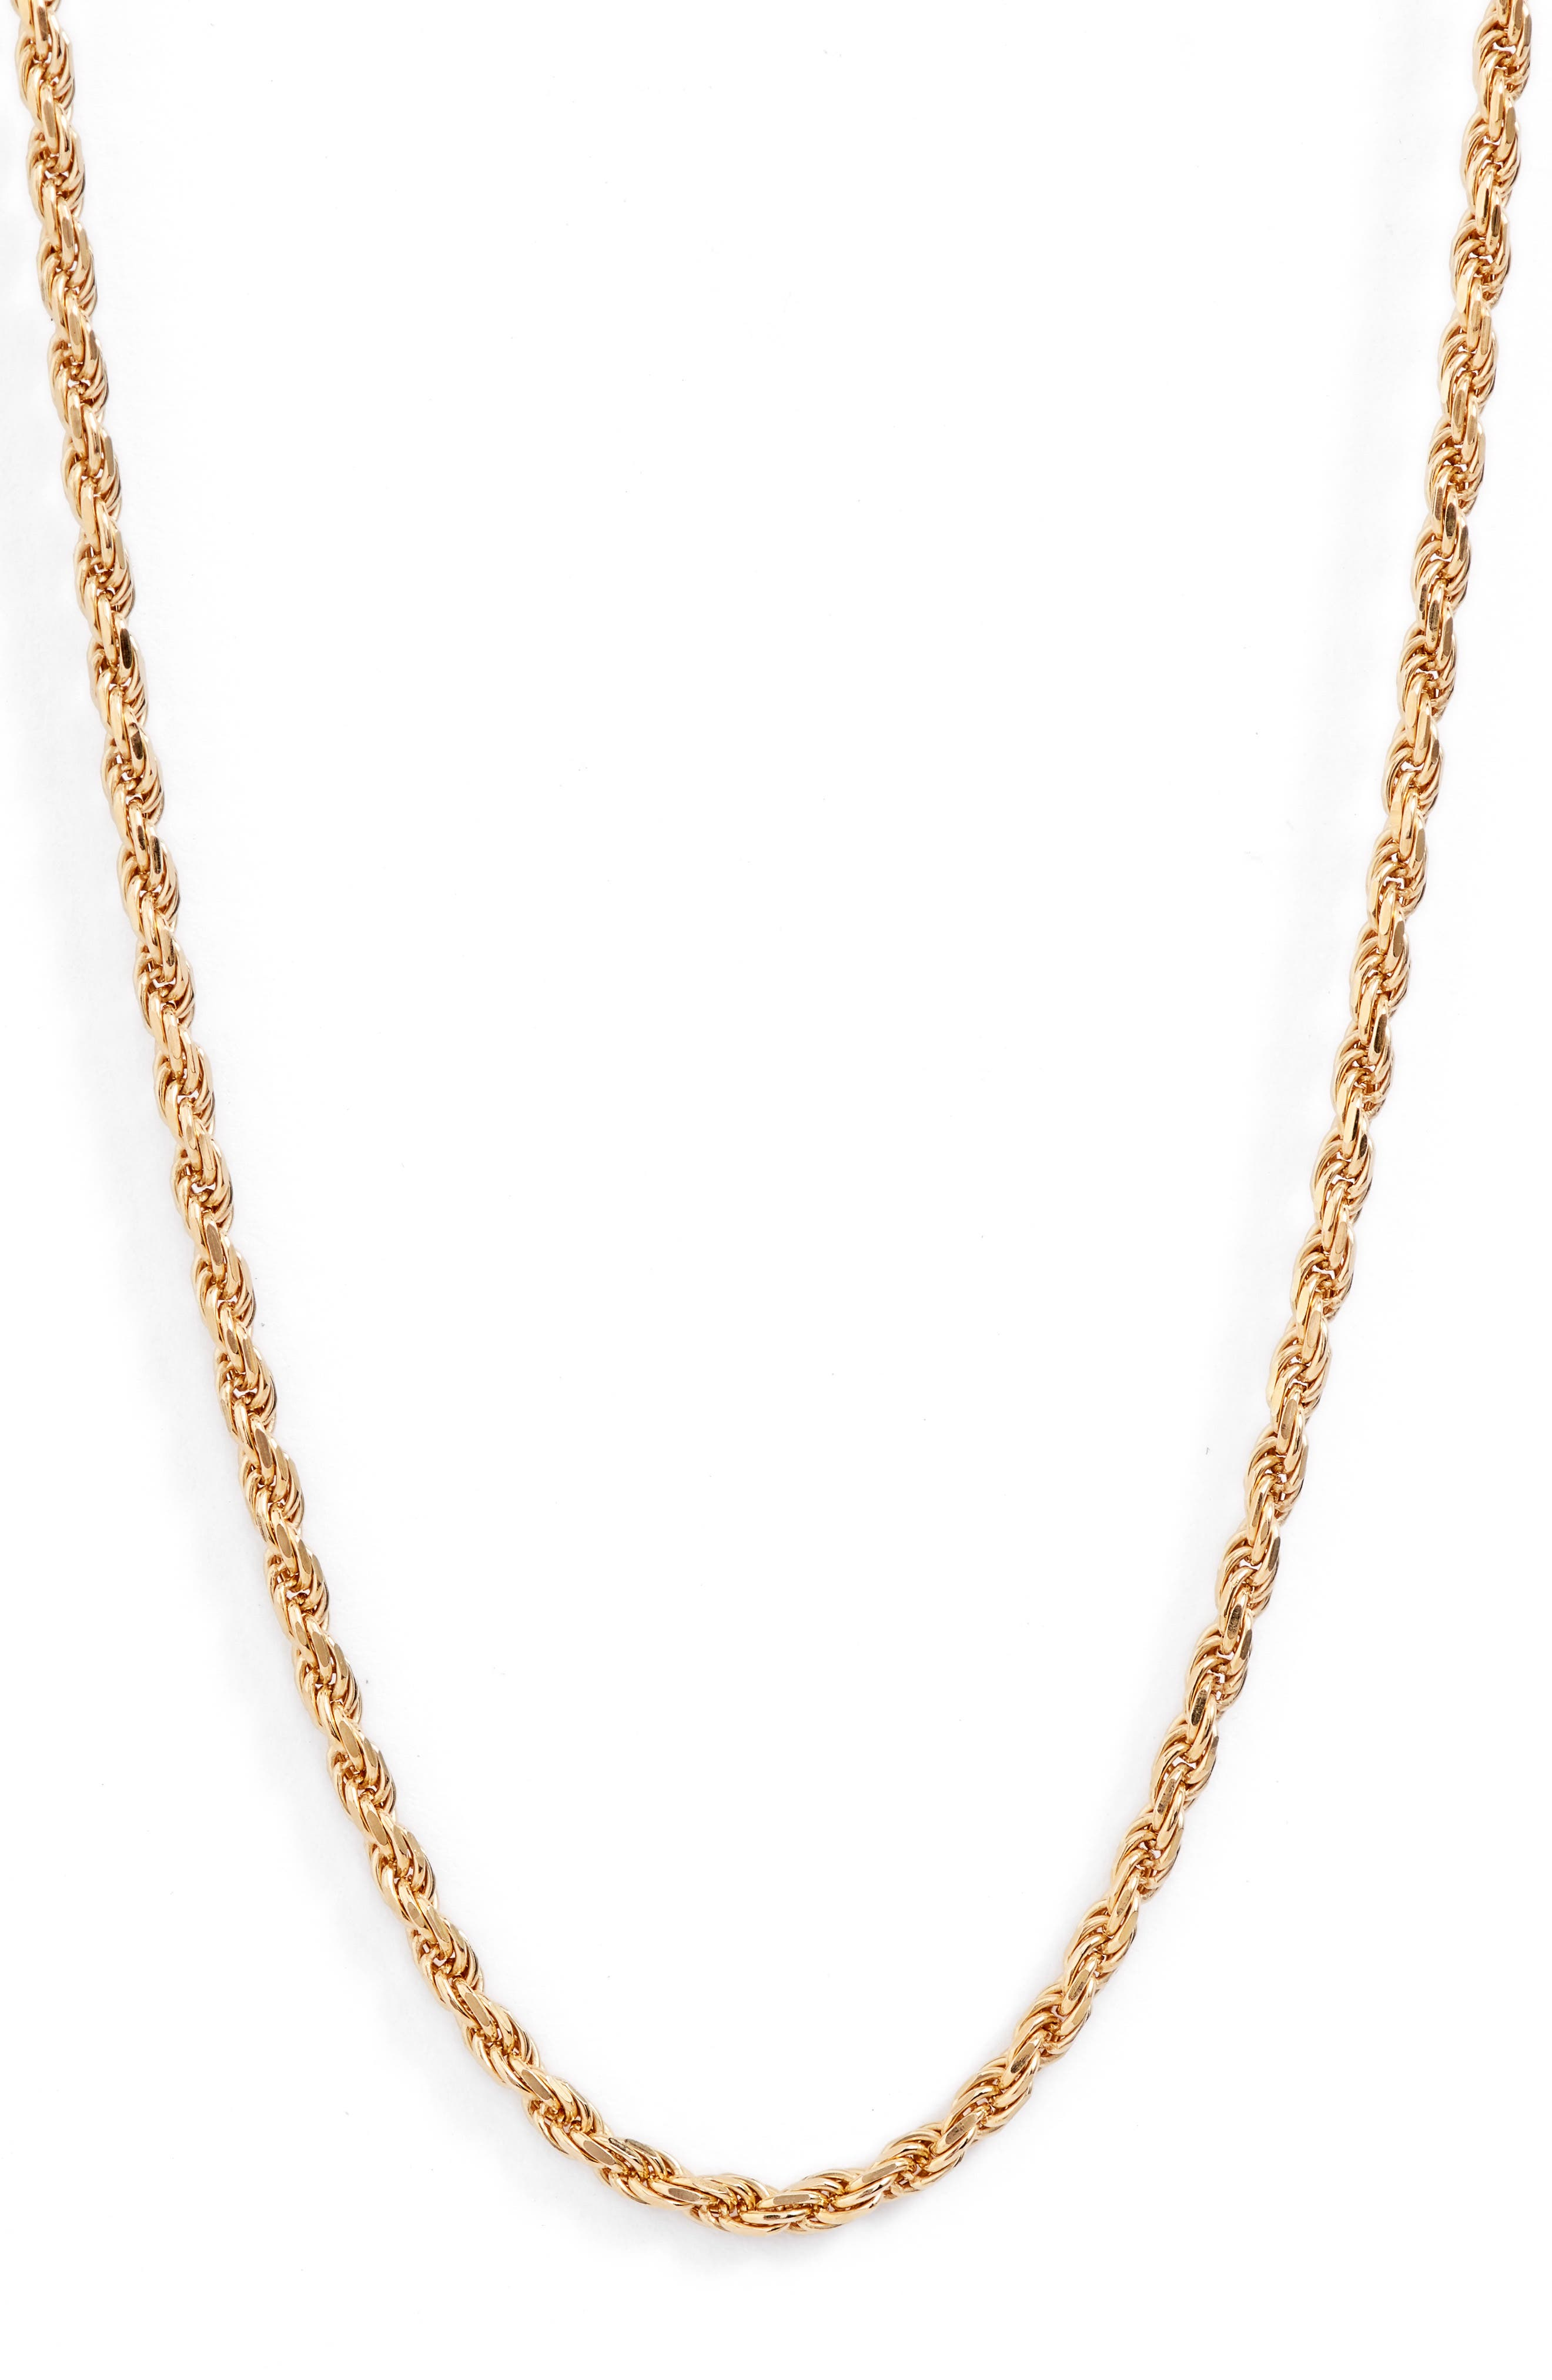 Foxtail Chain Long Necklace